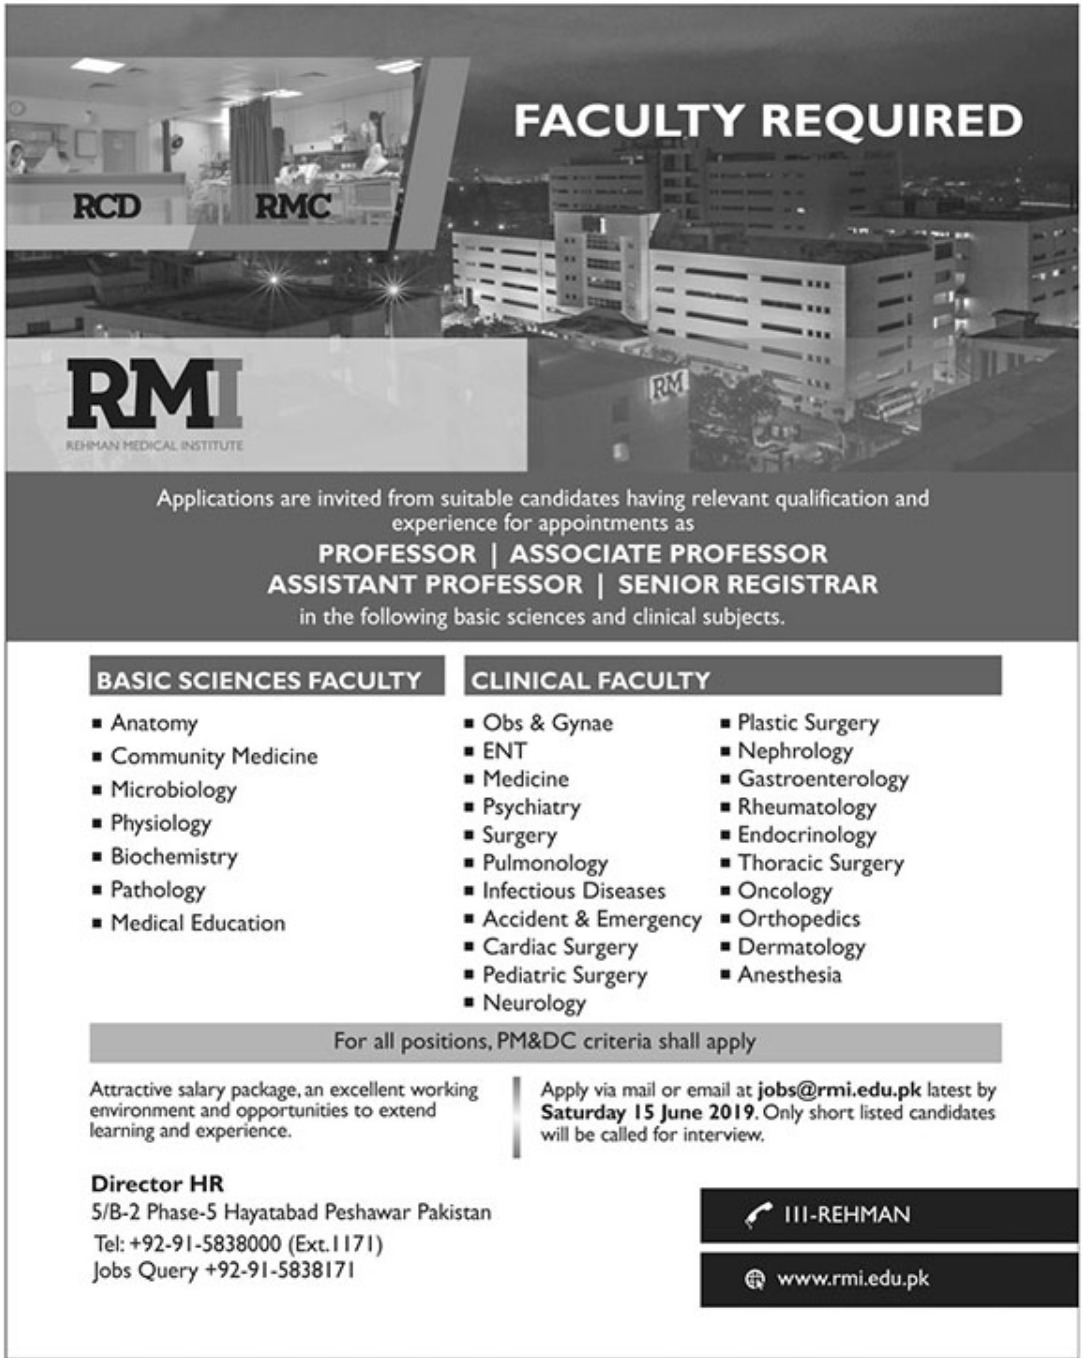 Rehman Medical Institute RMI Peshawar Jobs 2019 KPK